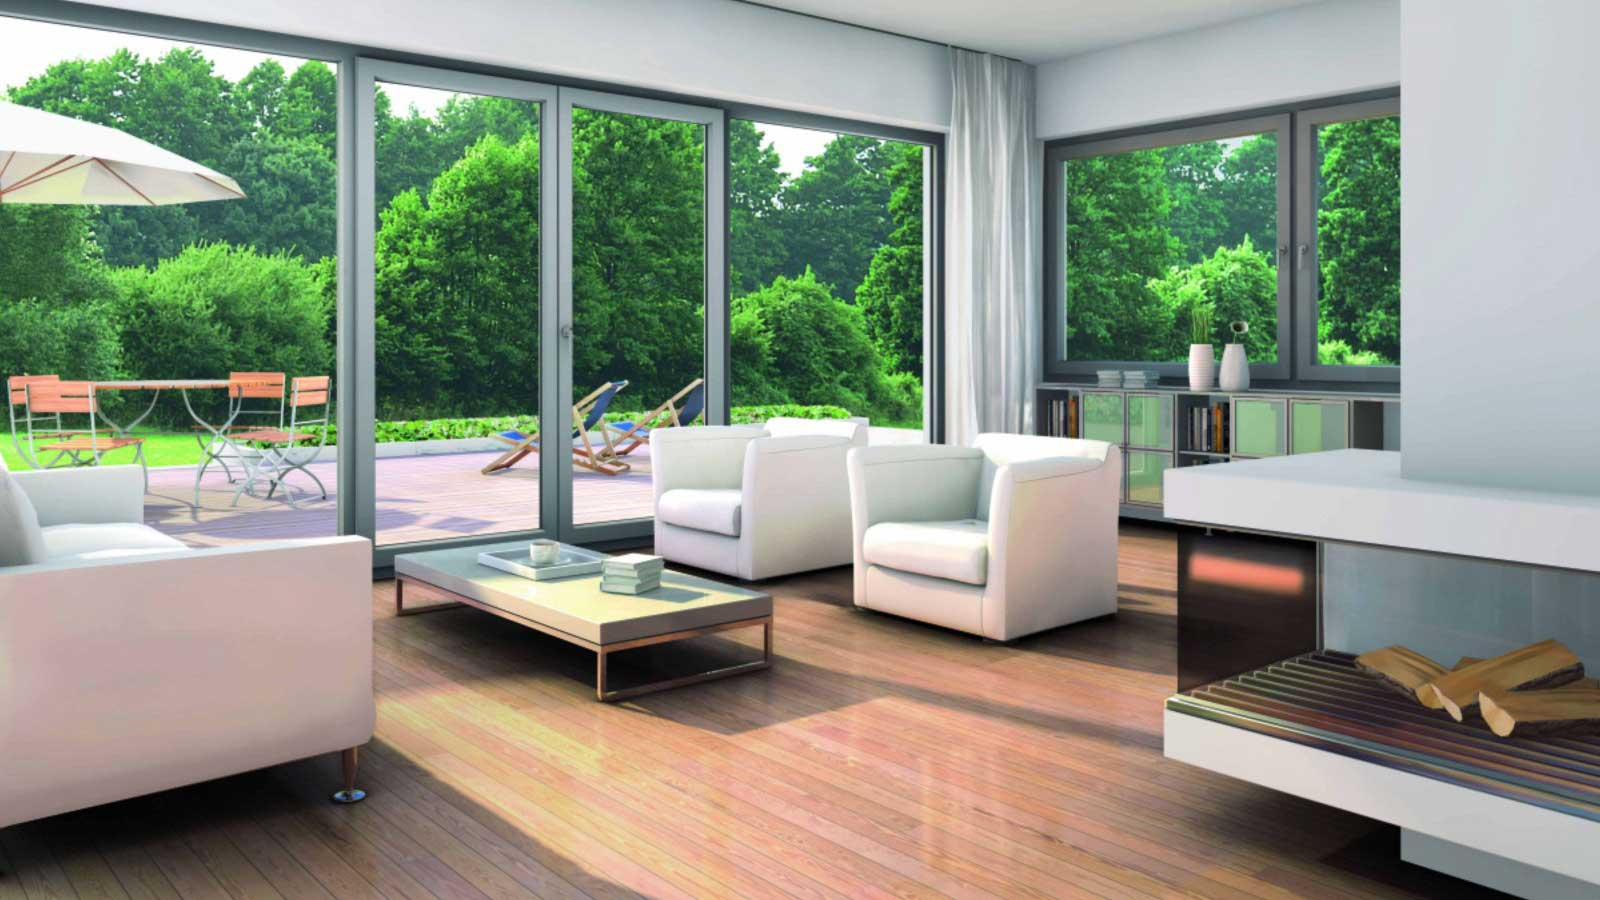 15 living room window designs decorating ideas design Modern houses with big windows